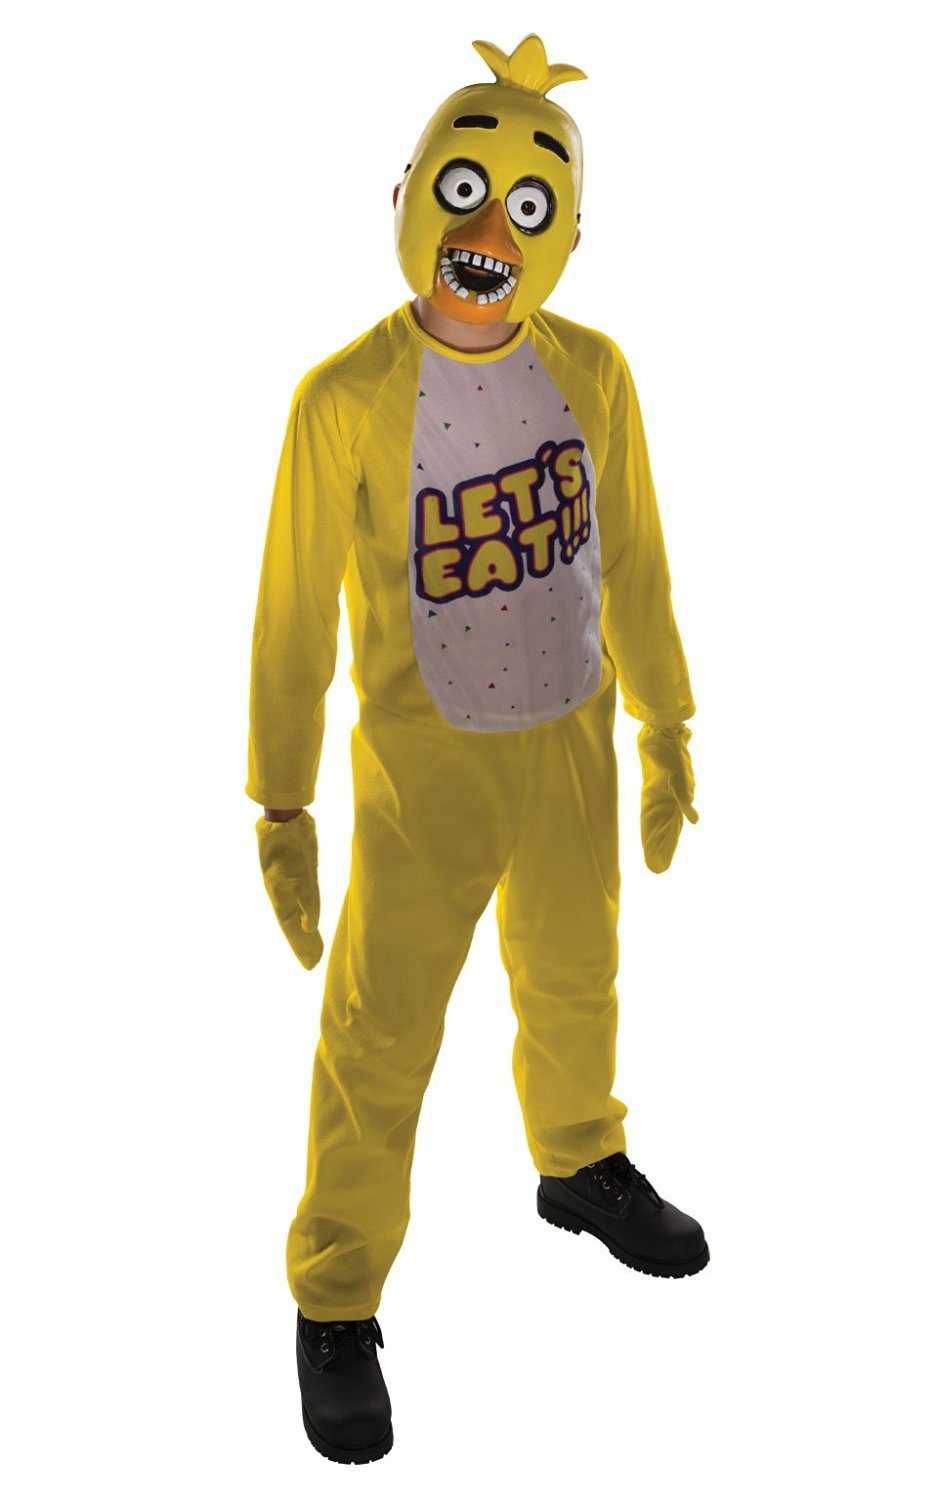 Chica five nights at freddy's 630101